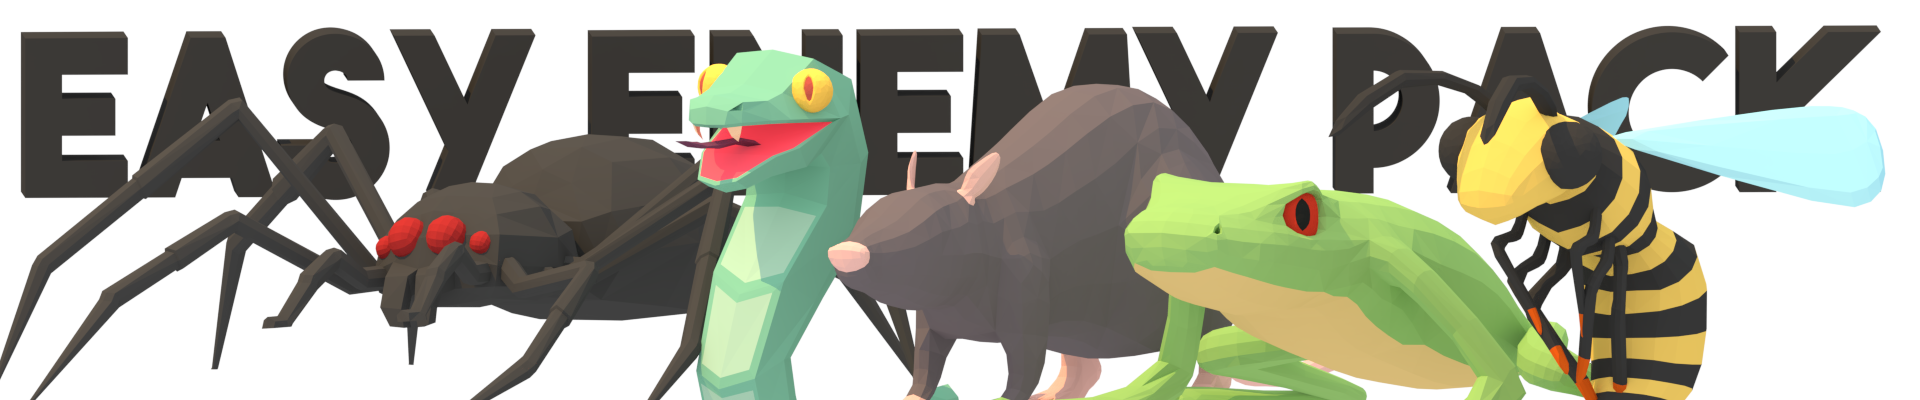 LowPoly Animated Easy Enemies